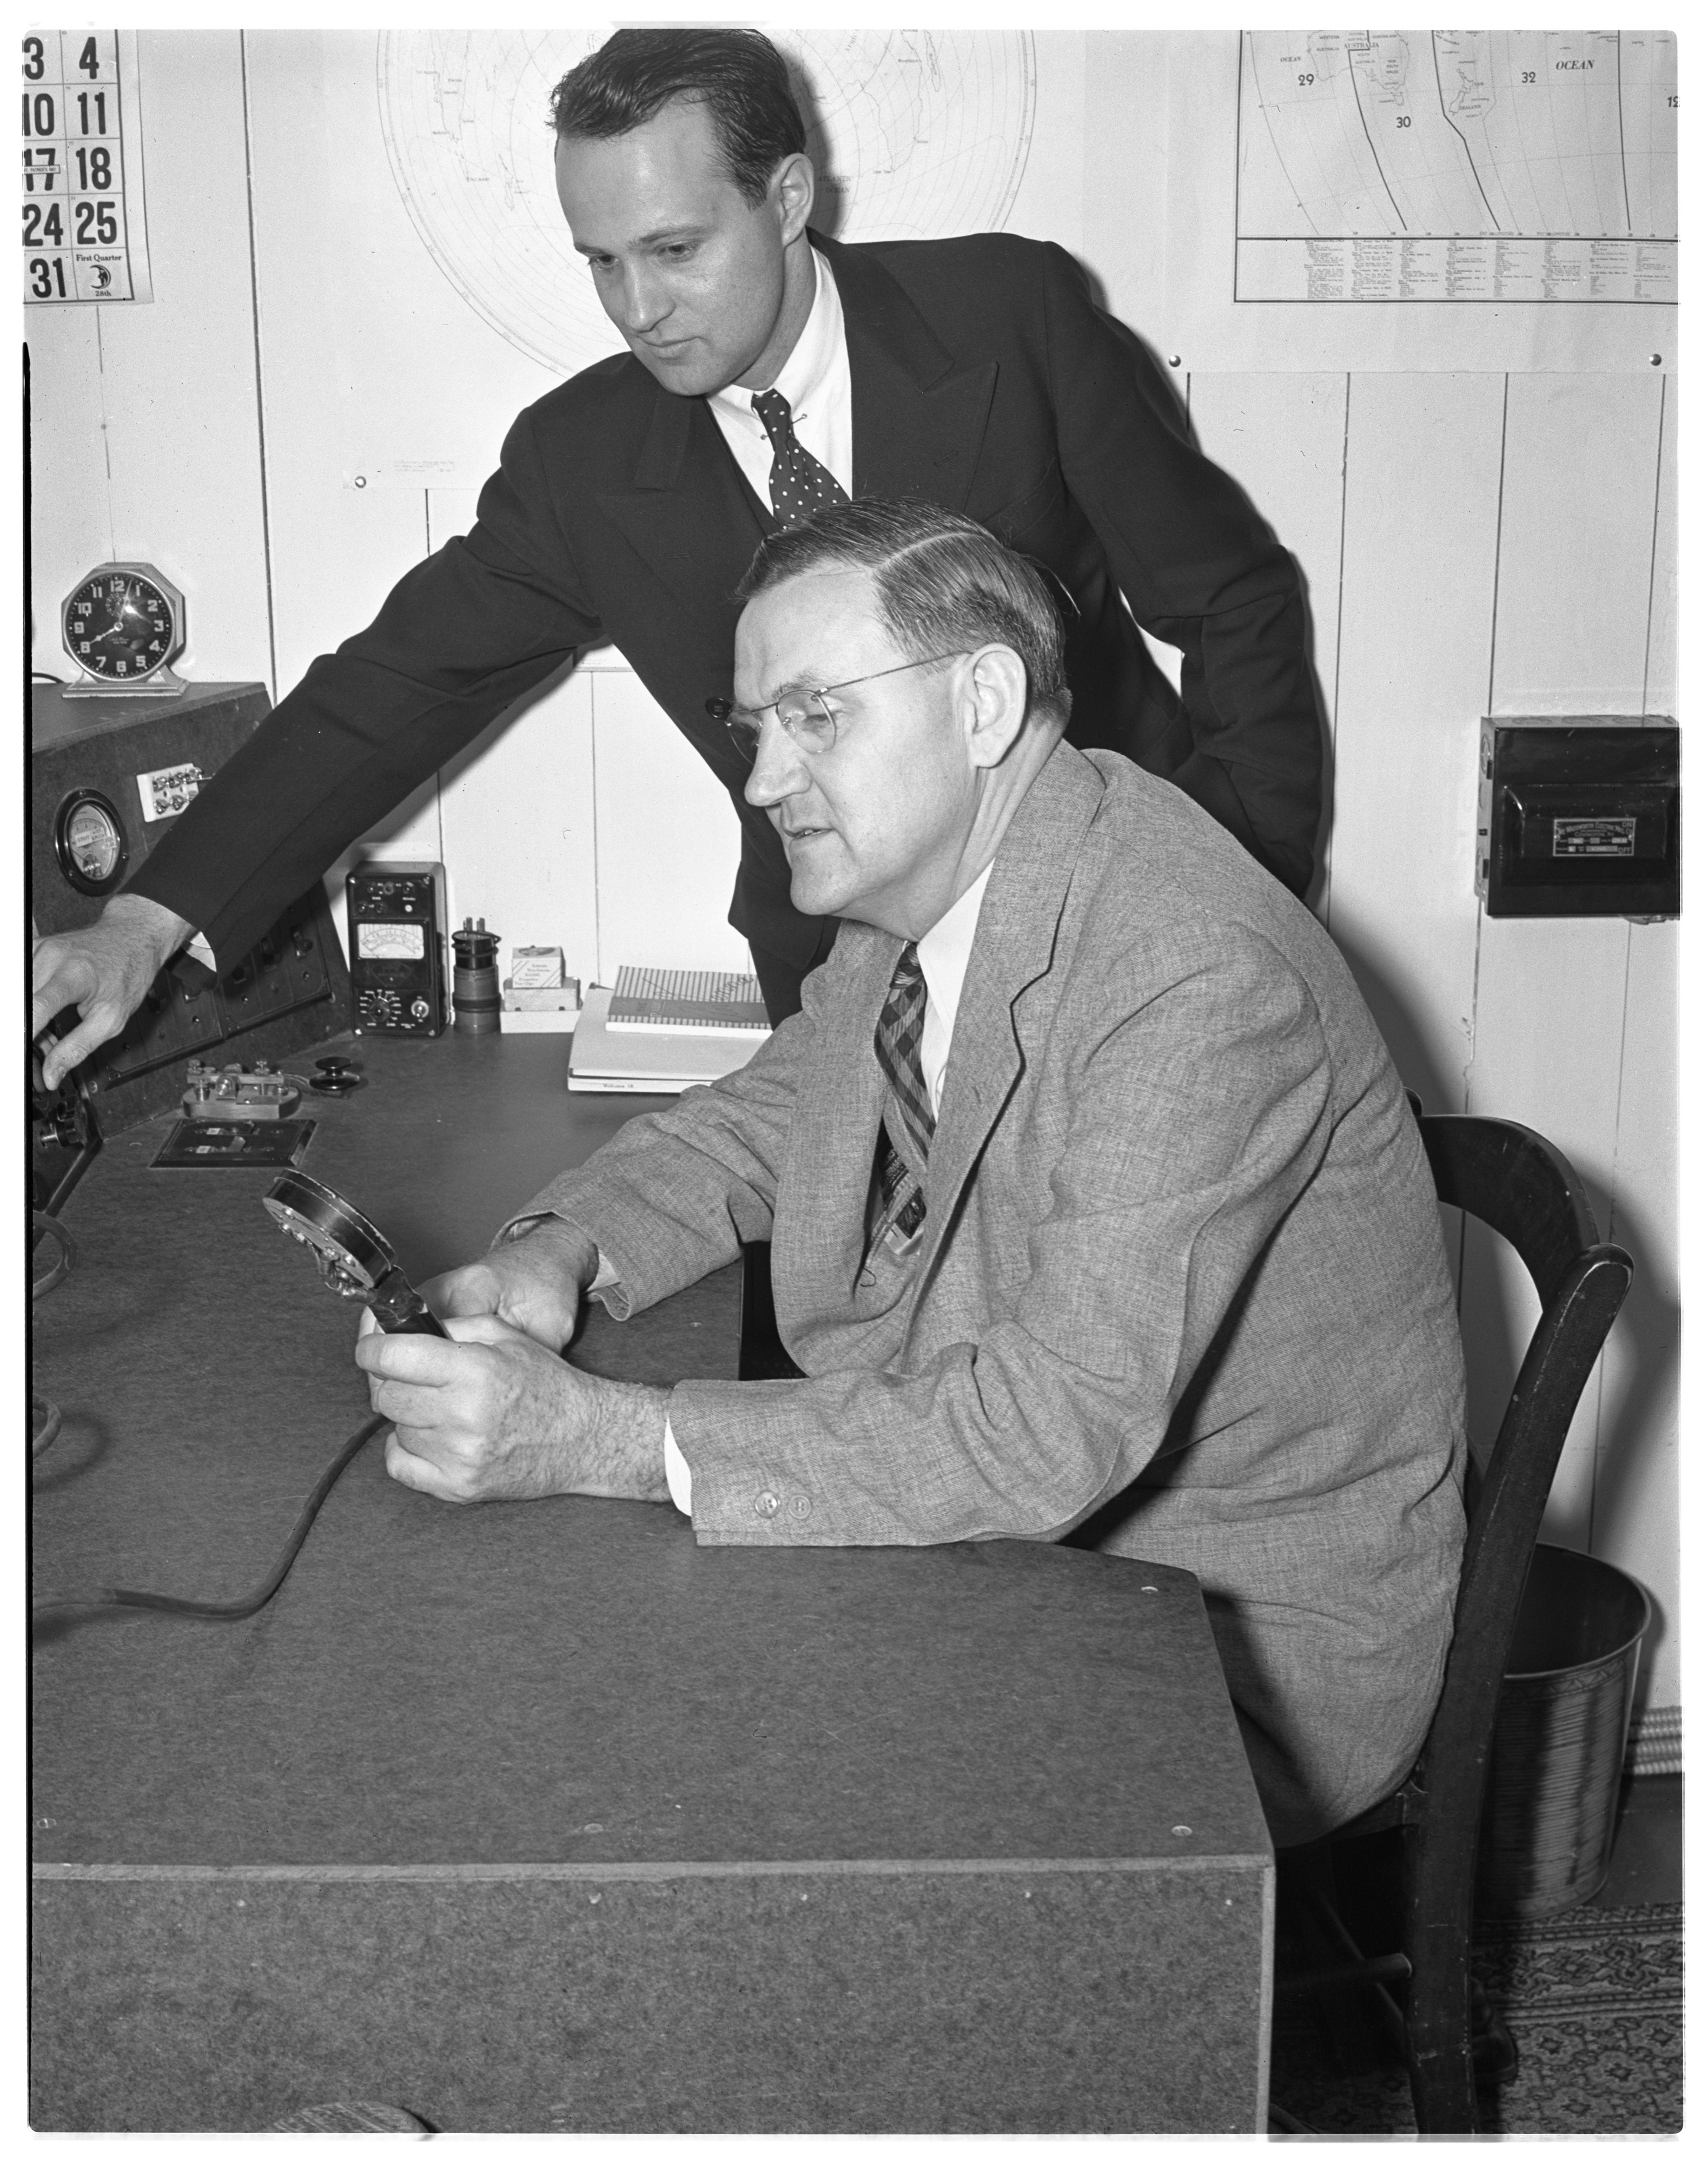 Radio Develops Long-Distance Friendship Between Dr. John D. Kraus and Rev. C. R. Stegall, March 1939 image